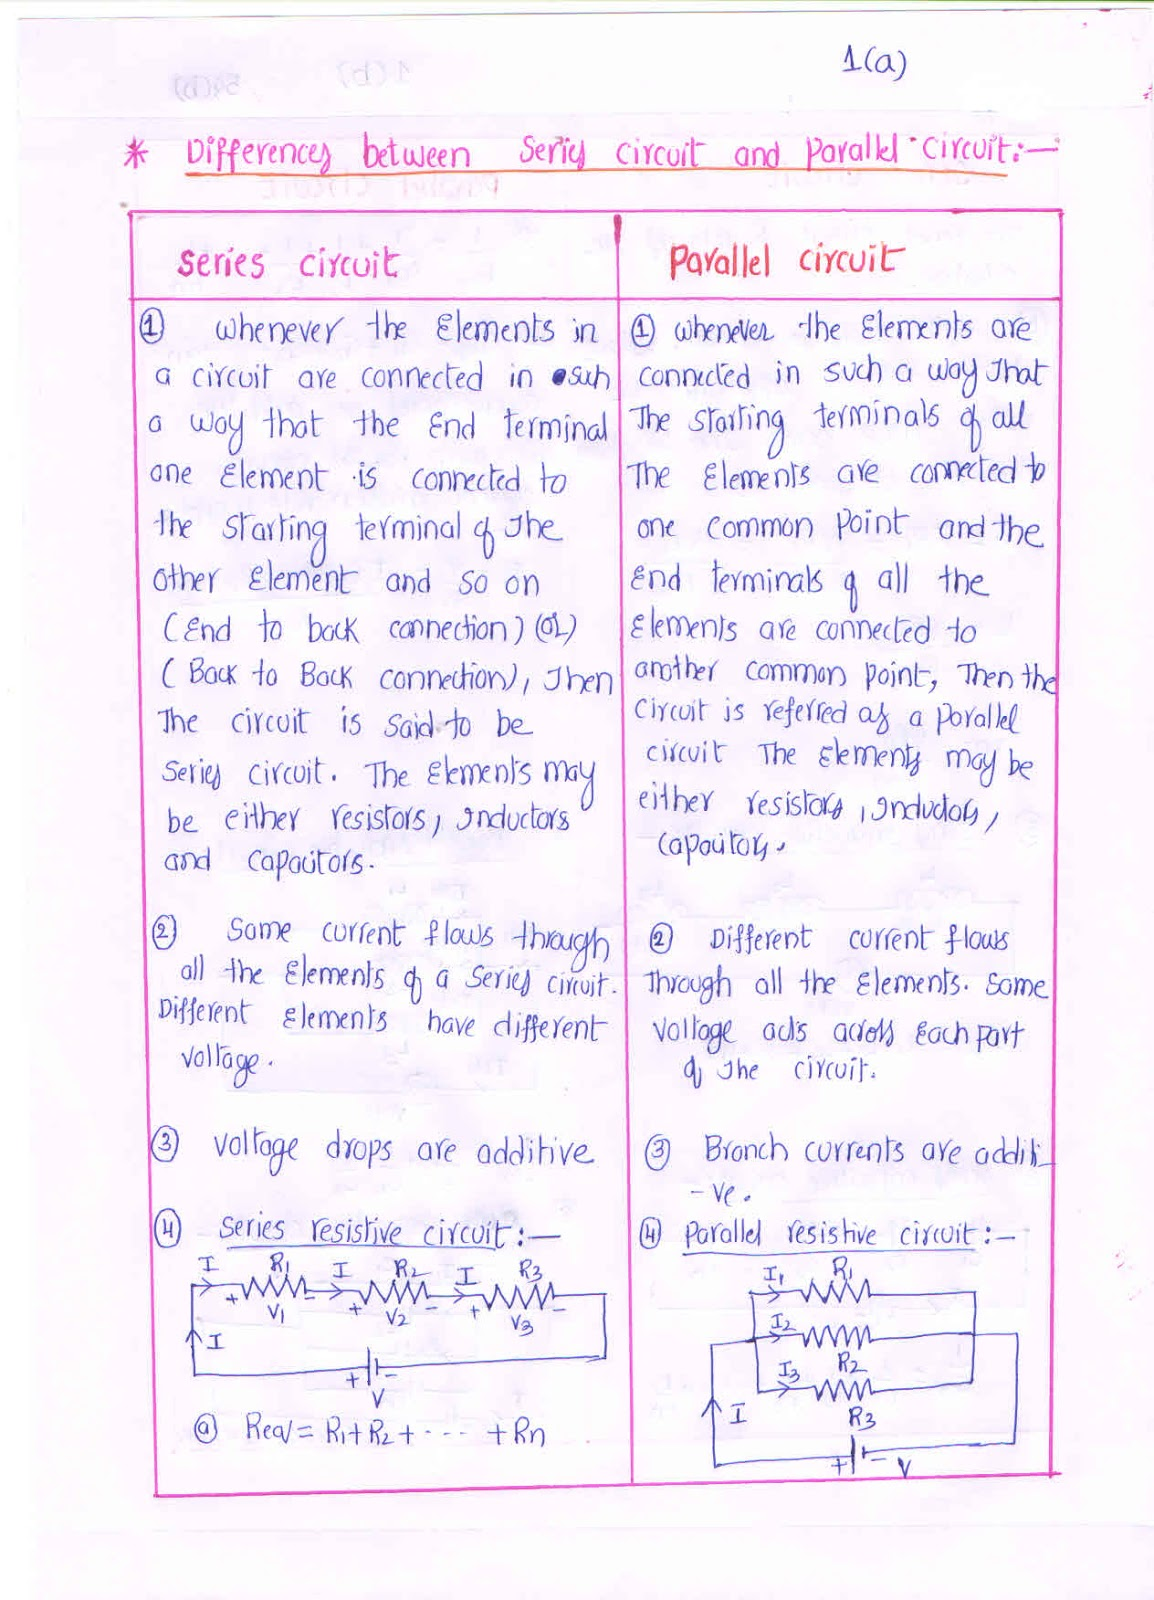 Praveenksphoorthy Unit 1b Differences Between Series And Parallel In A Circuit Circuits